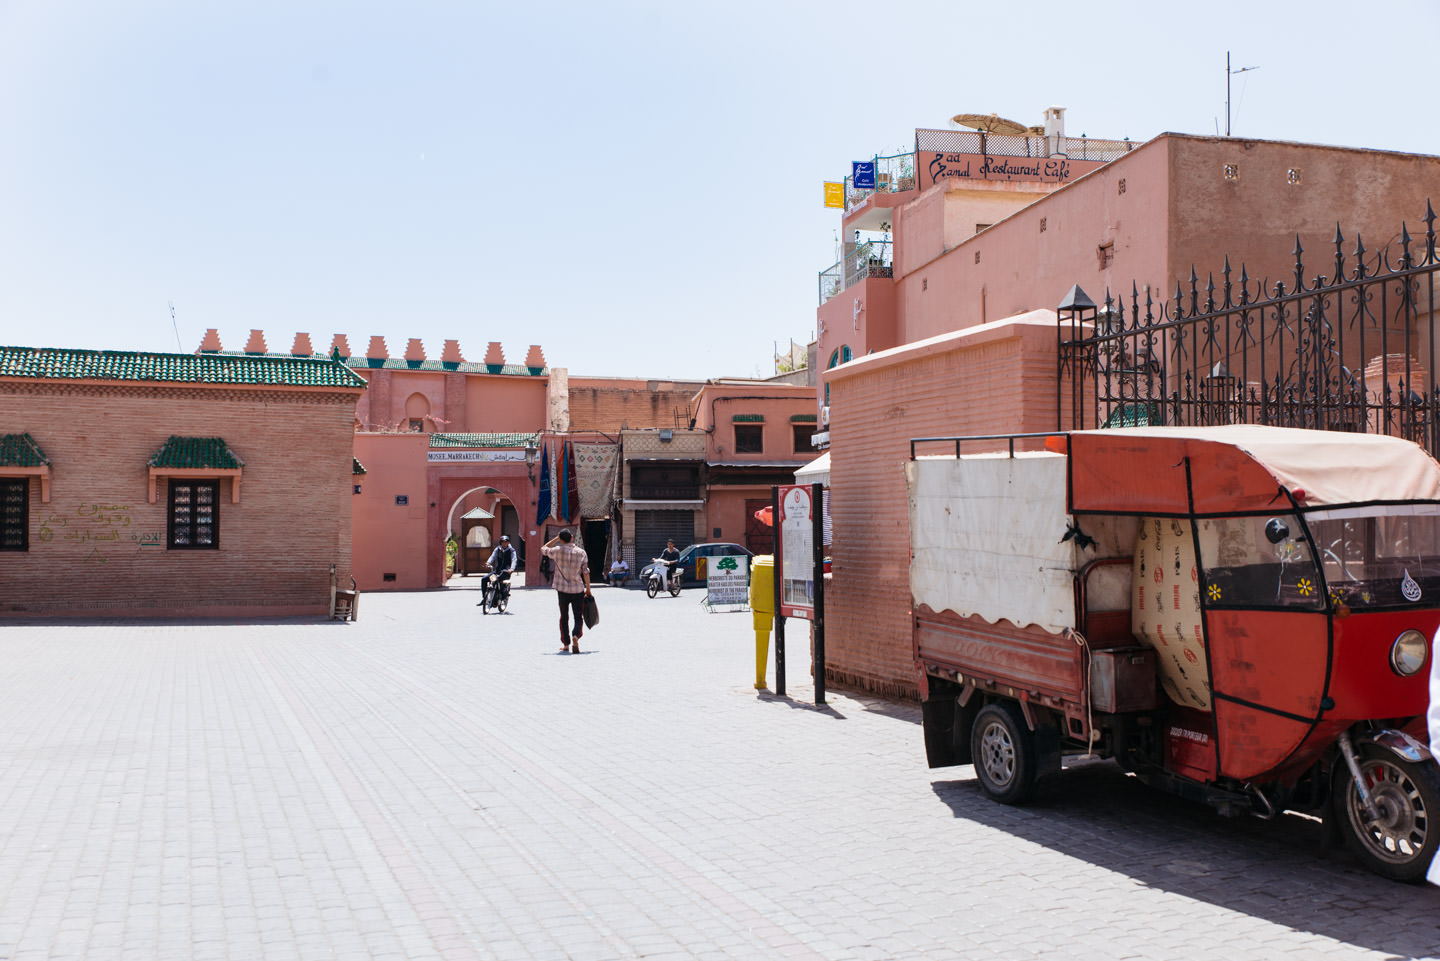 Blog-Mode-And-The-City-Lifestyle-Le-Madarin-Oriental-Marrakech-22